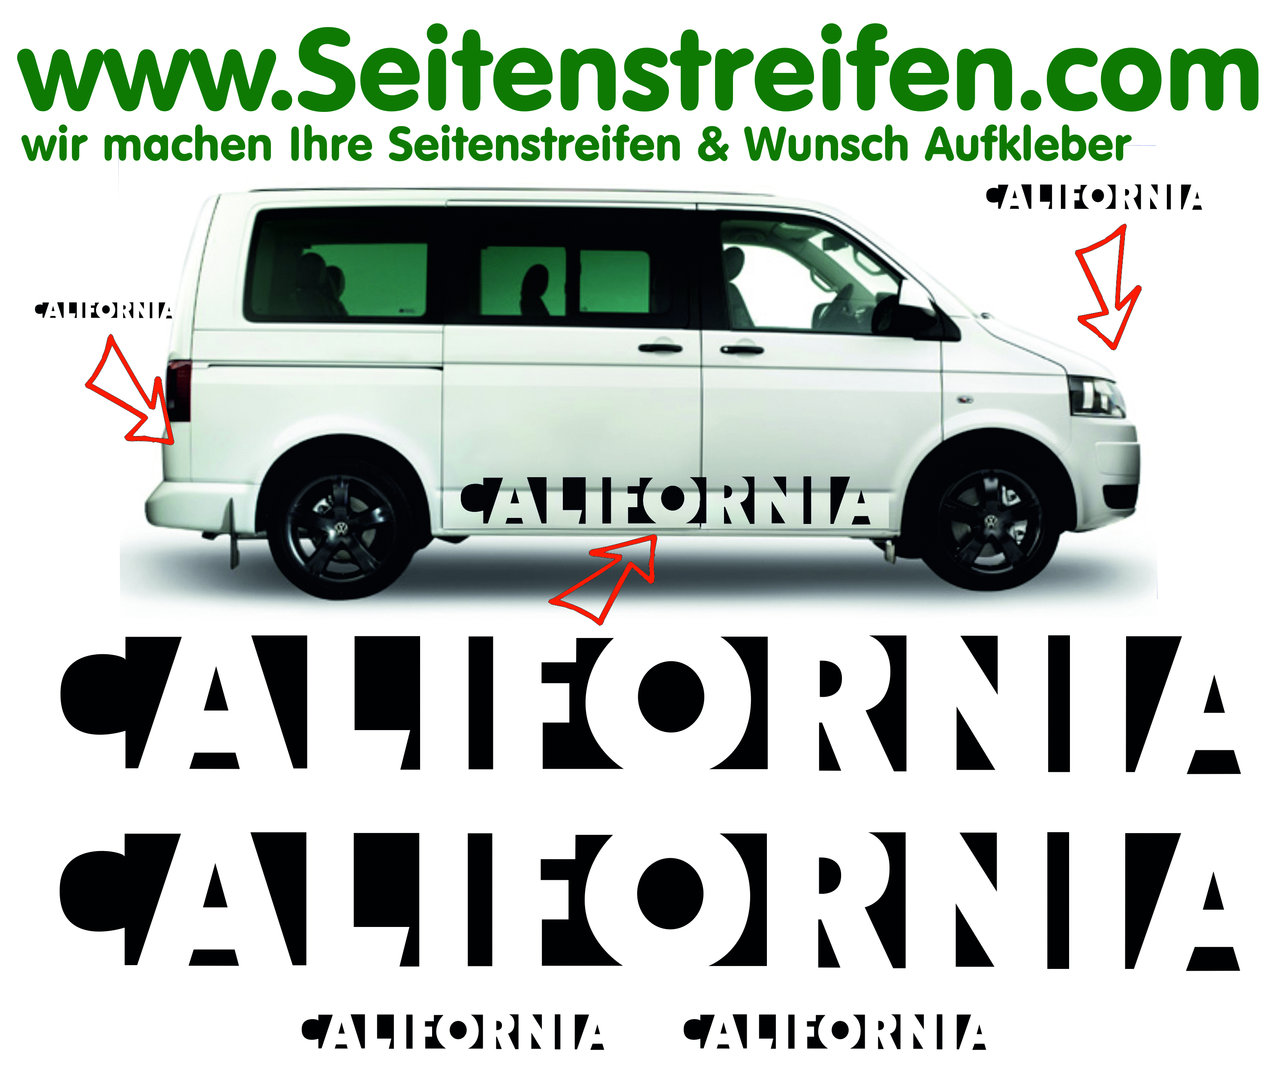 California San Francisco Edition Look VW Bus T4 T5 Seitenstreifen Aufkleber Komplett Set - Nr. 3550